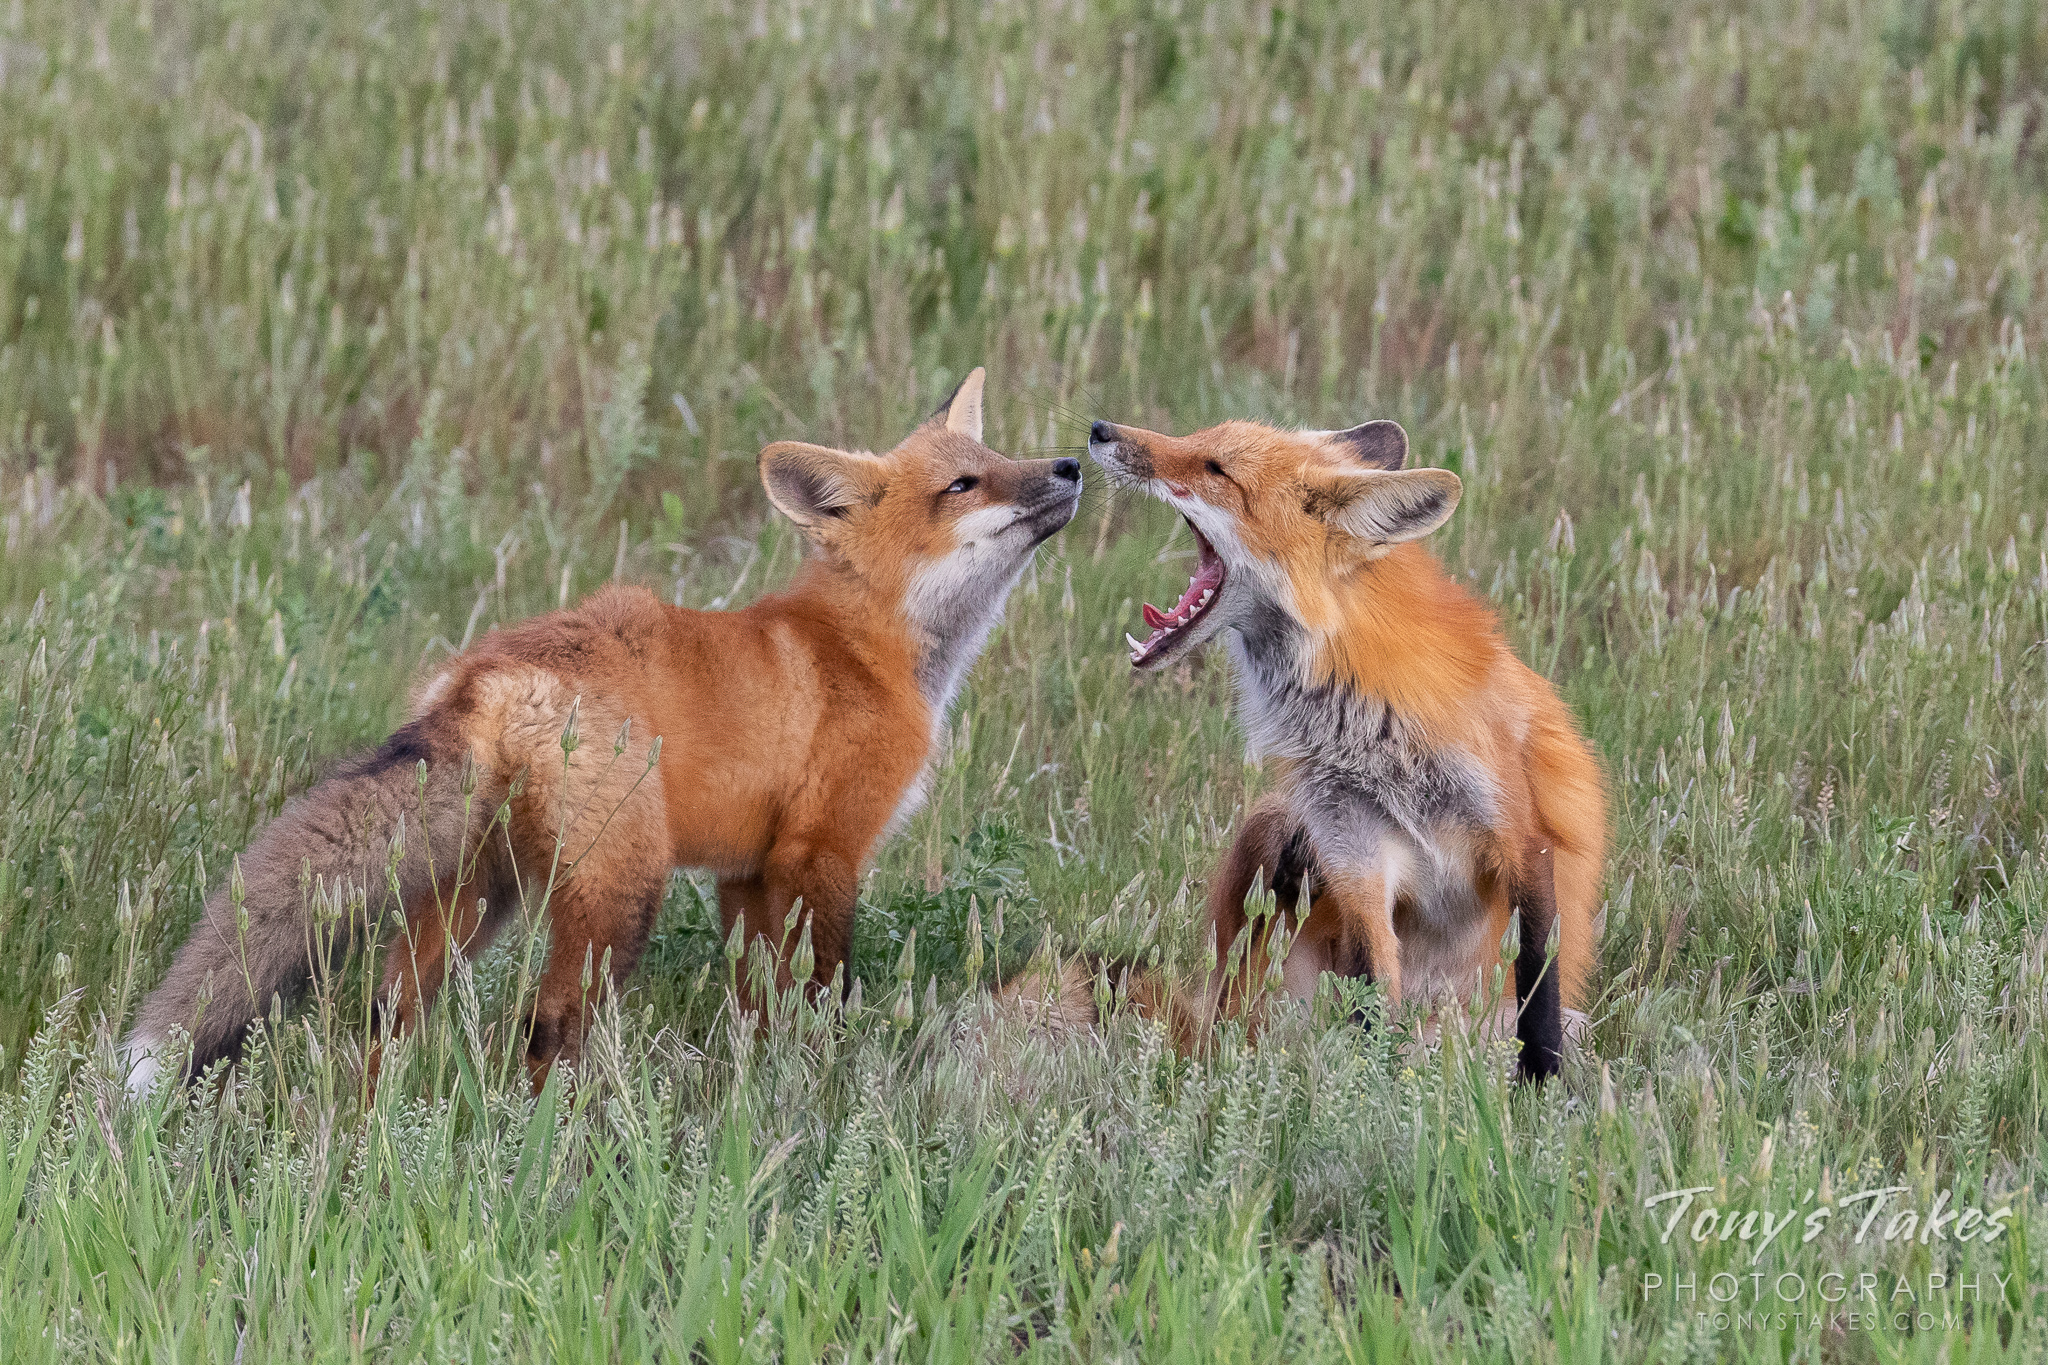 A red fox kit checks out its mother's mouth while she yawns. (© Tony's Takes)